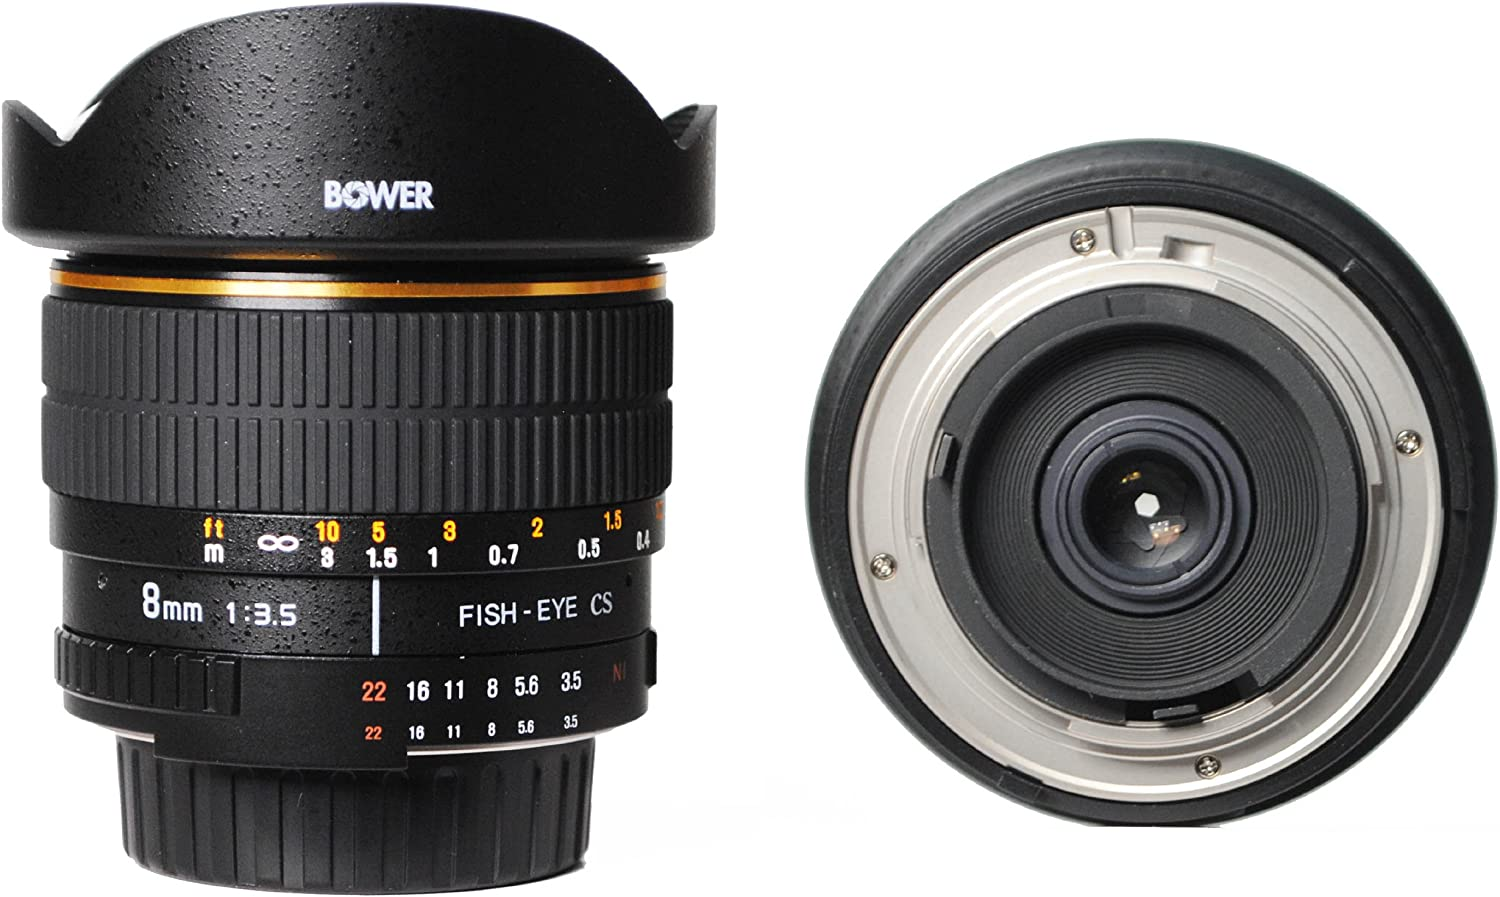 Bower SLY358P Ultra Wide-Angle 8mm f//3.5 Fisheye Lens for Pentax